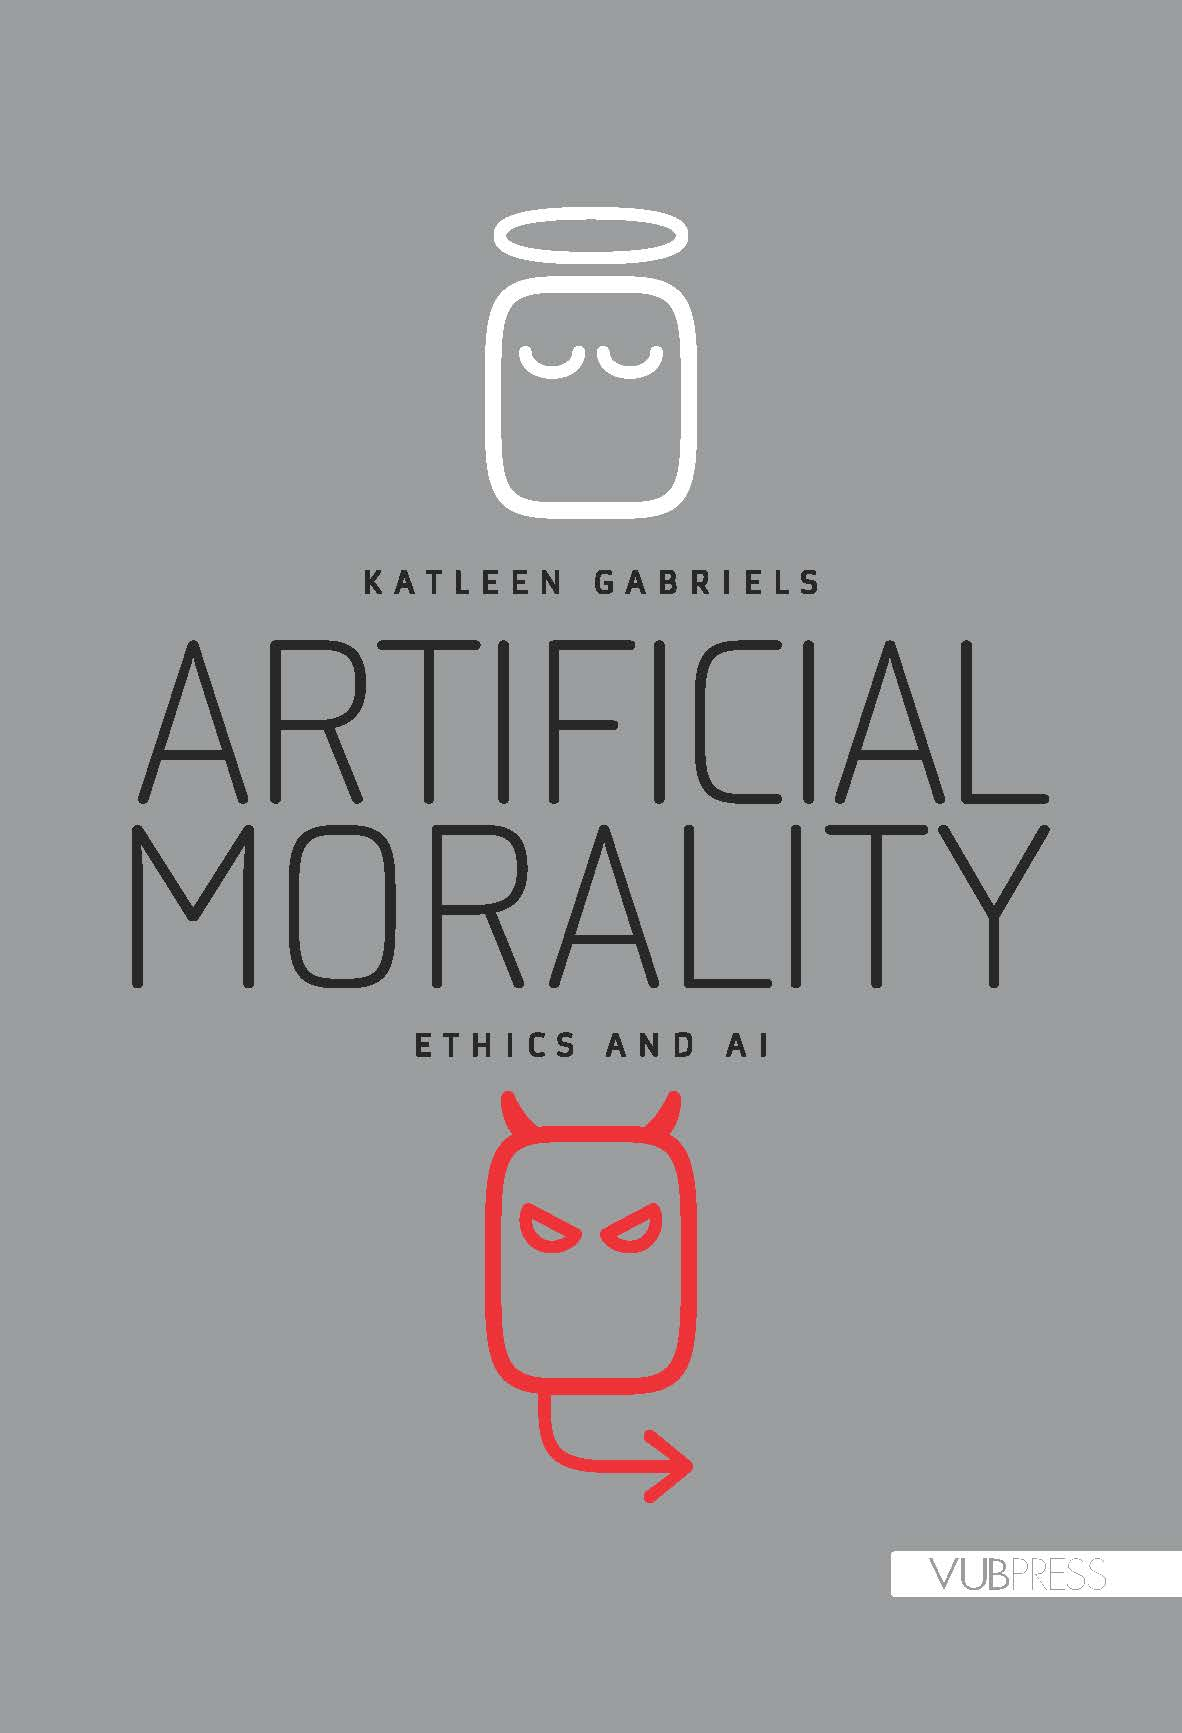 ARTIFICIAL MORALITY